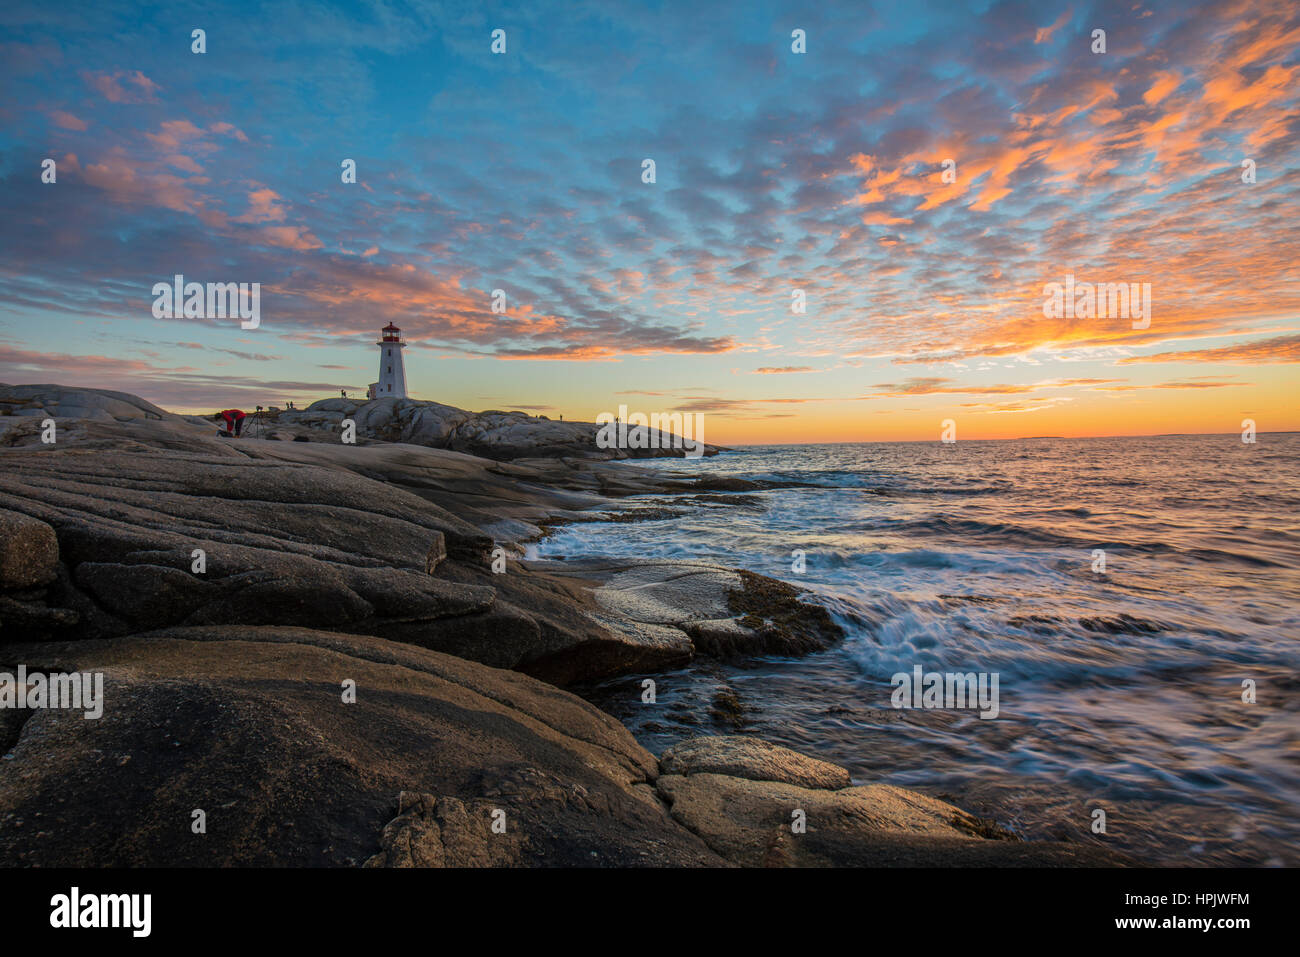 atlantic ocean peggy s cove rock and stone beach sunset landscape in